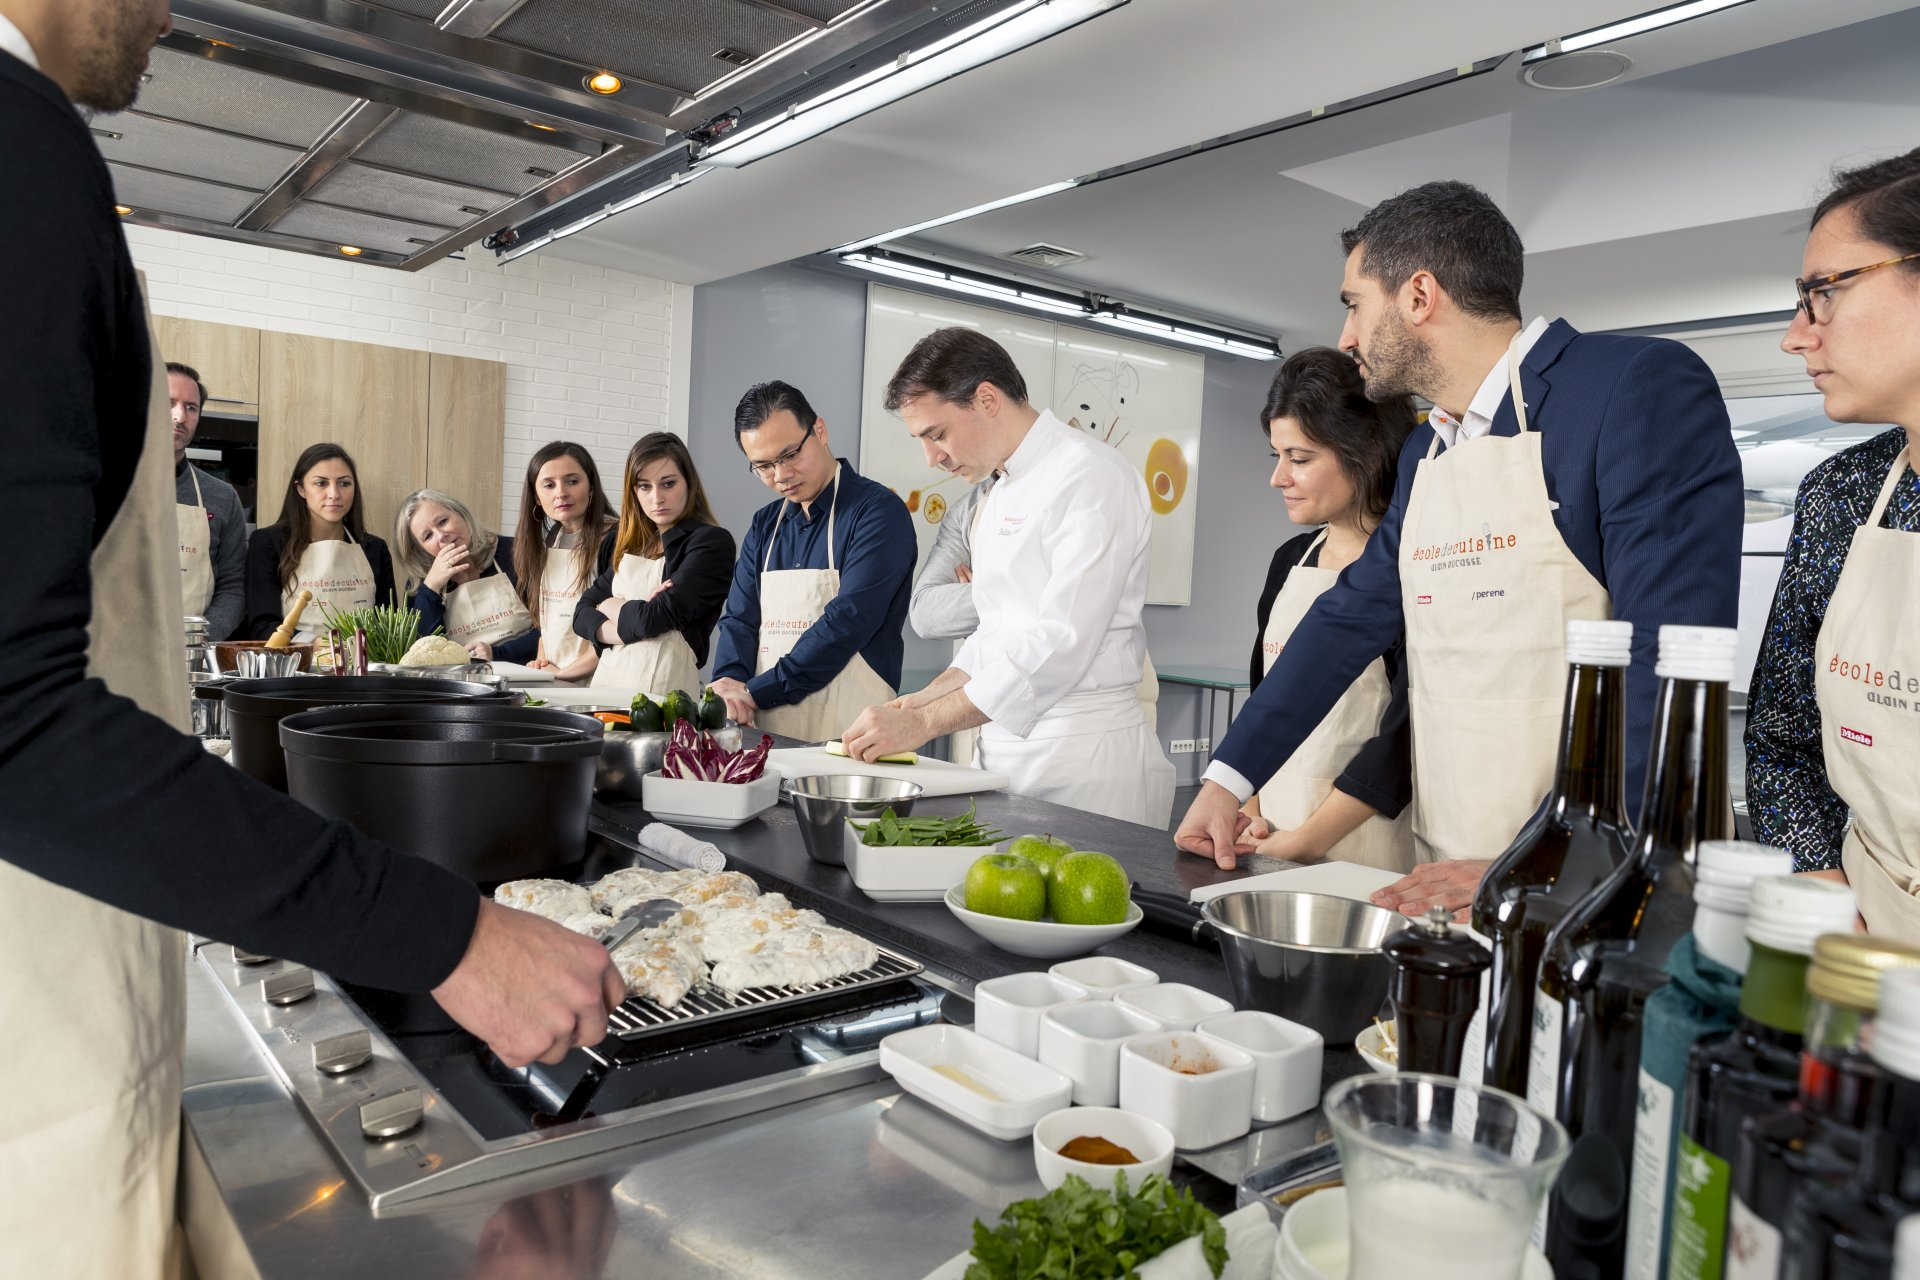 Cours Cuisine Ducasse Produit Ideal Meetings And Events